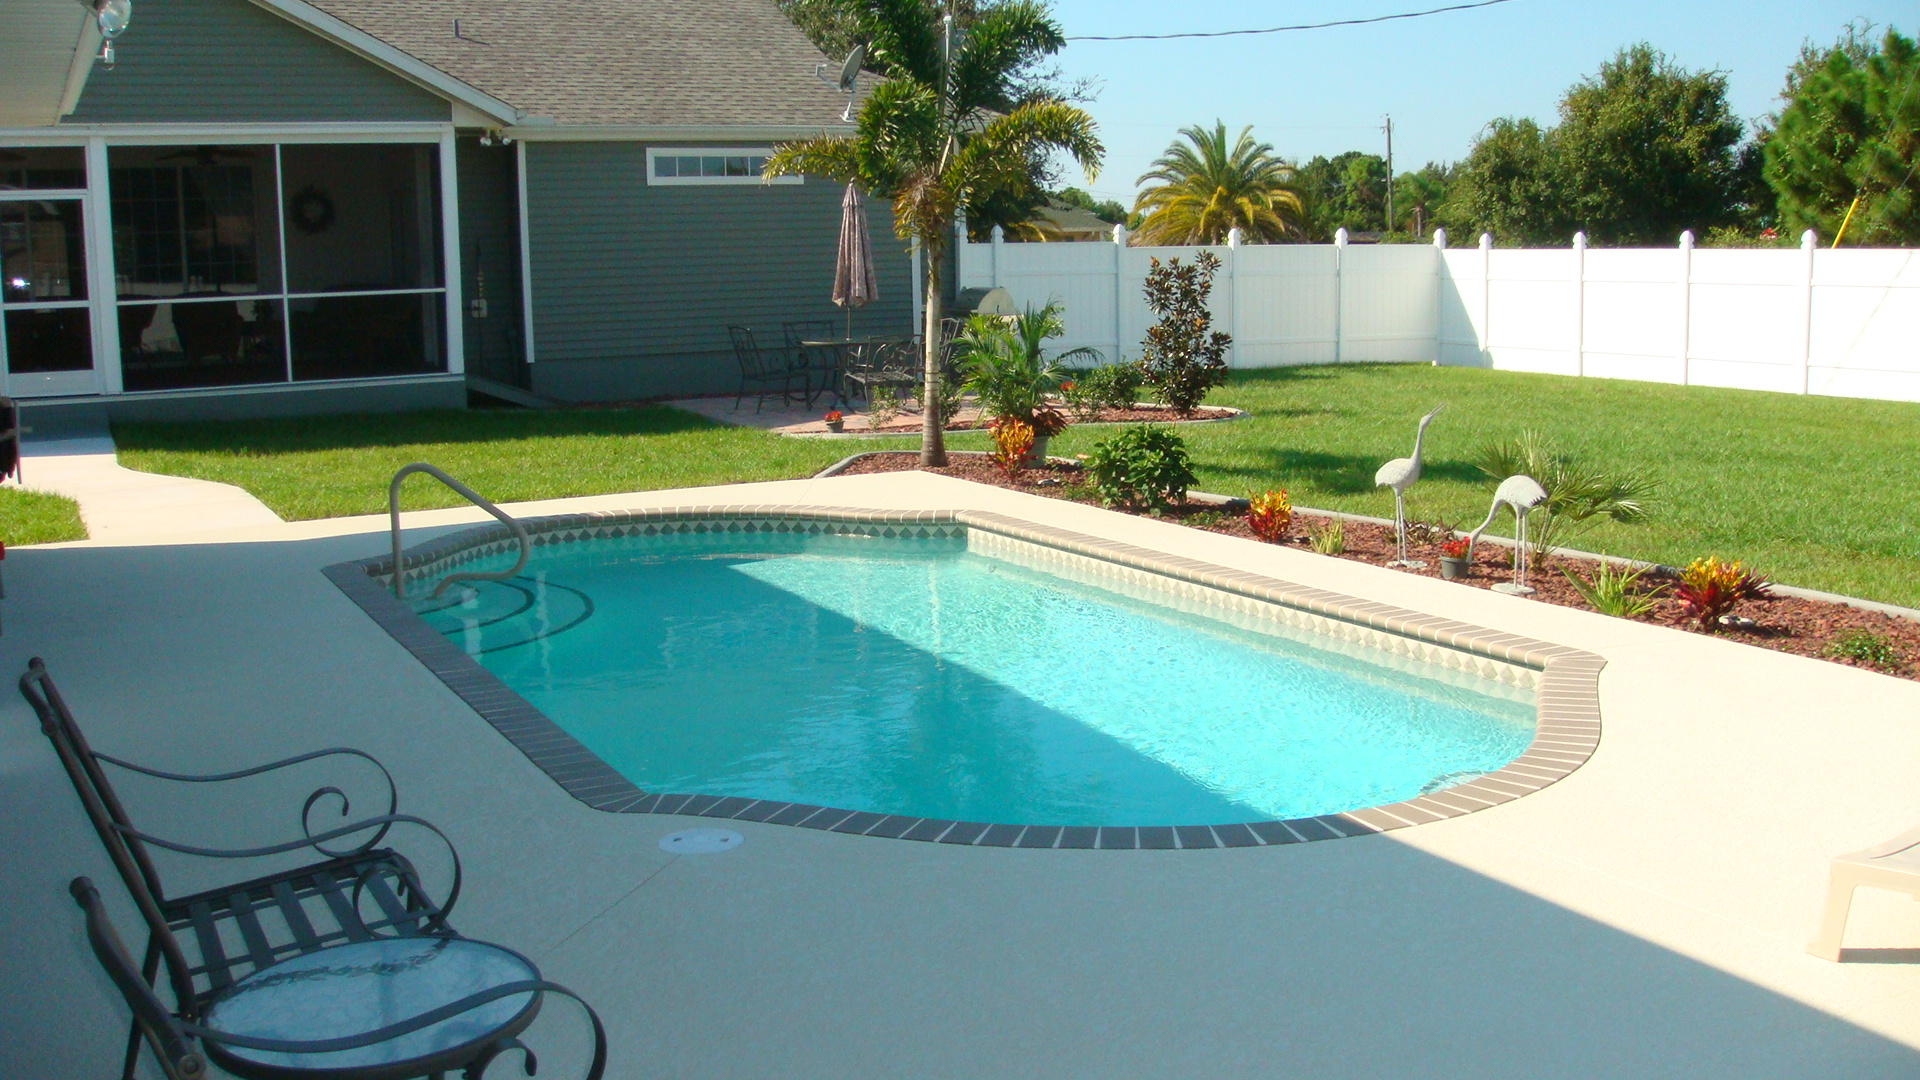 Stone around pool beauteous stone edge around pool design for Pool design concepts sarasota